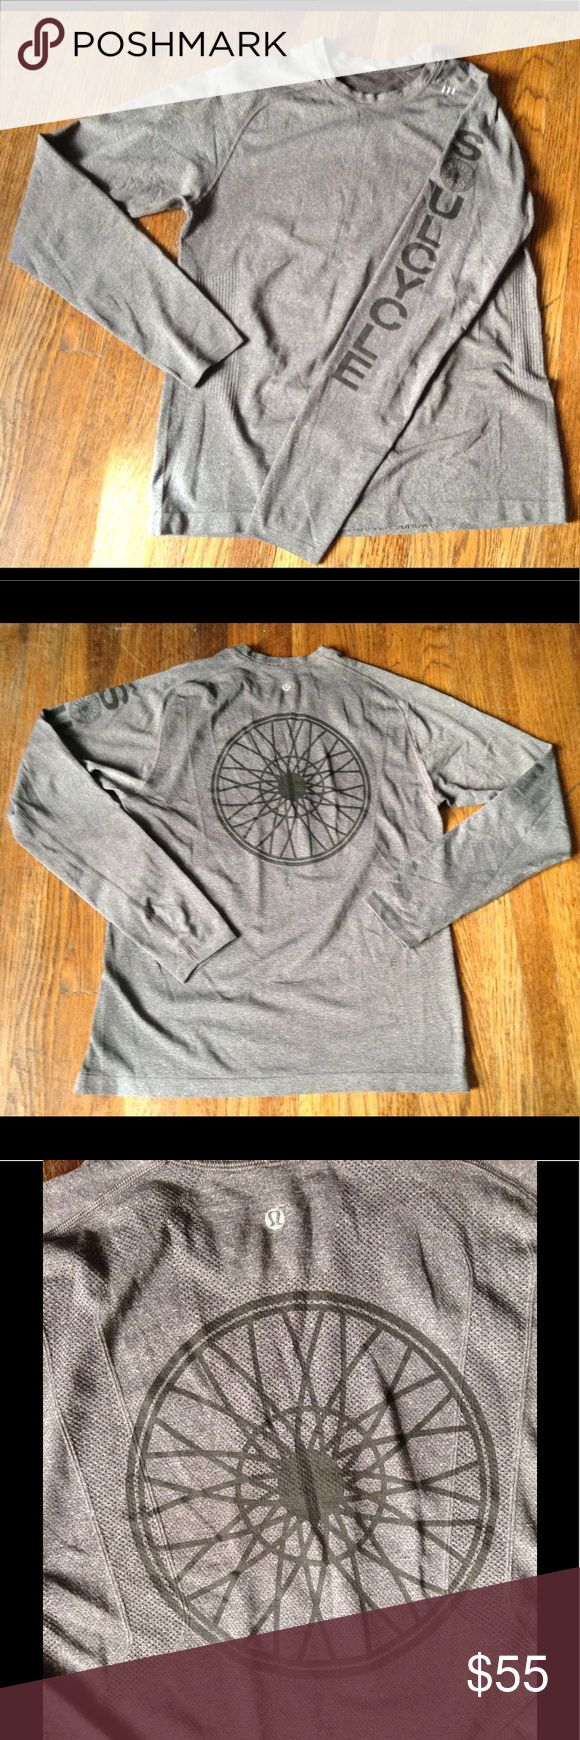 """Lululemon Soul Cycle Vented Track Shirt Men's Gray Long Sleeve Lululemon Soul Cycle Vented Track Shirt. Crew Neck. Size: M ... Measures : Length: 26"""" ... Sleeve: 22"""" ... Pit to Pit: 20"""" Excellent Condition Lululemon / Soul Cycle Shirts Tees - Long Sleeve"""